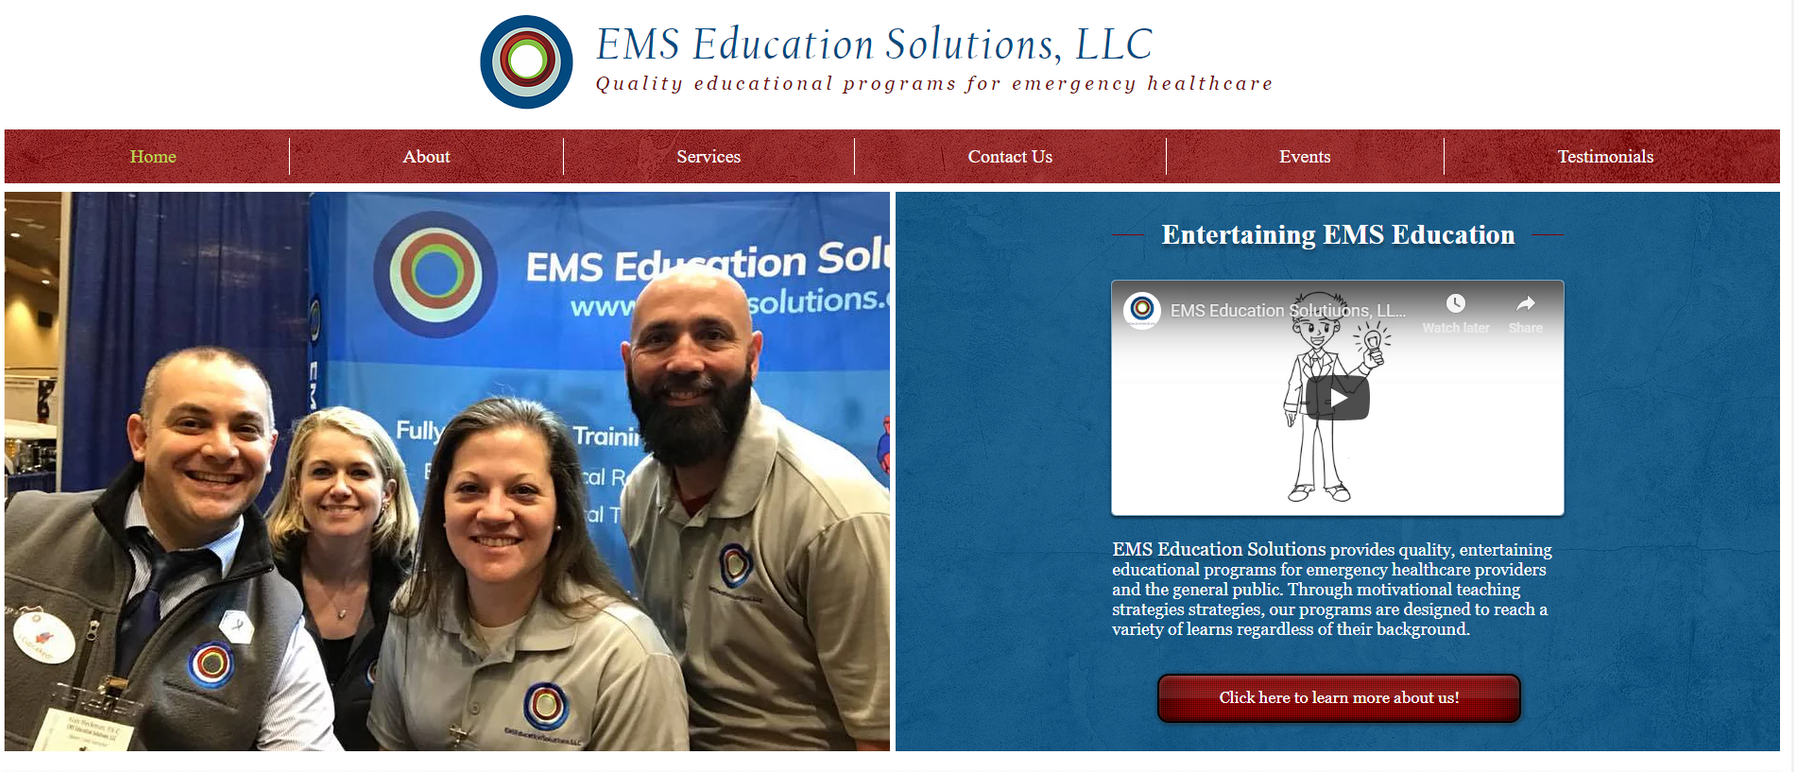 EMS Education Solutions